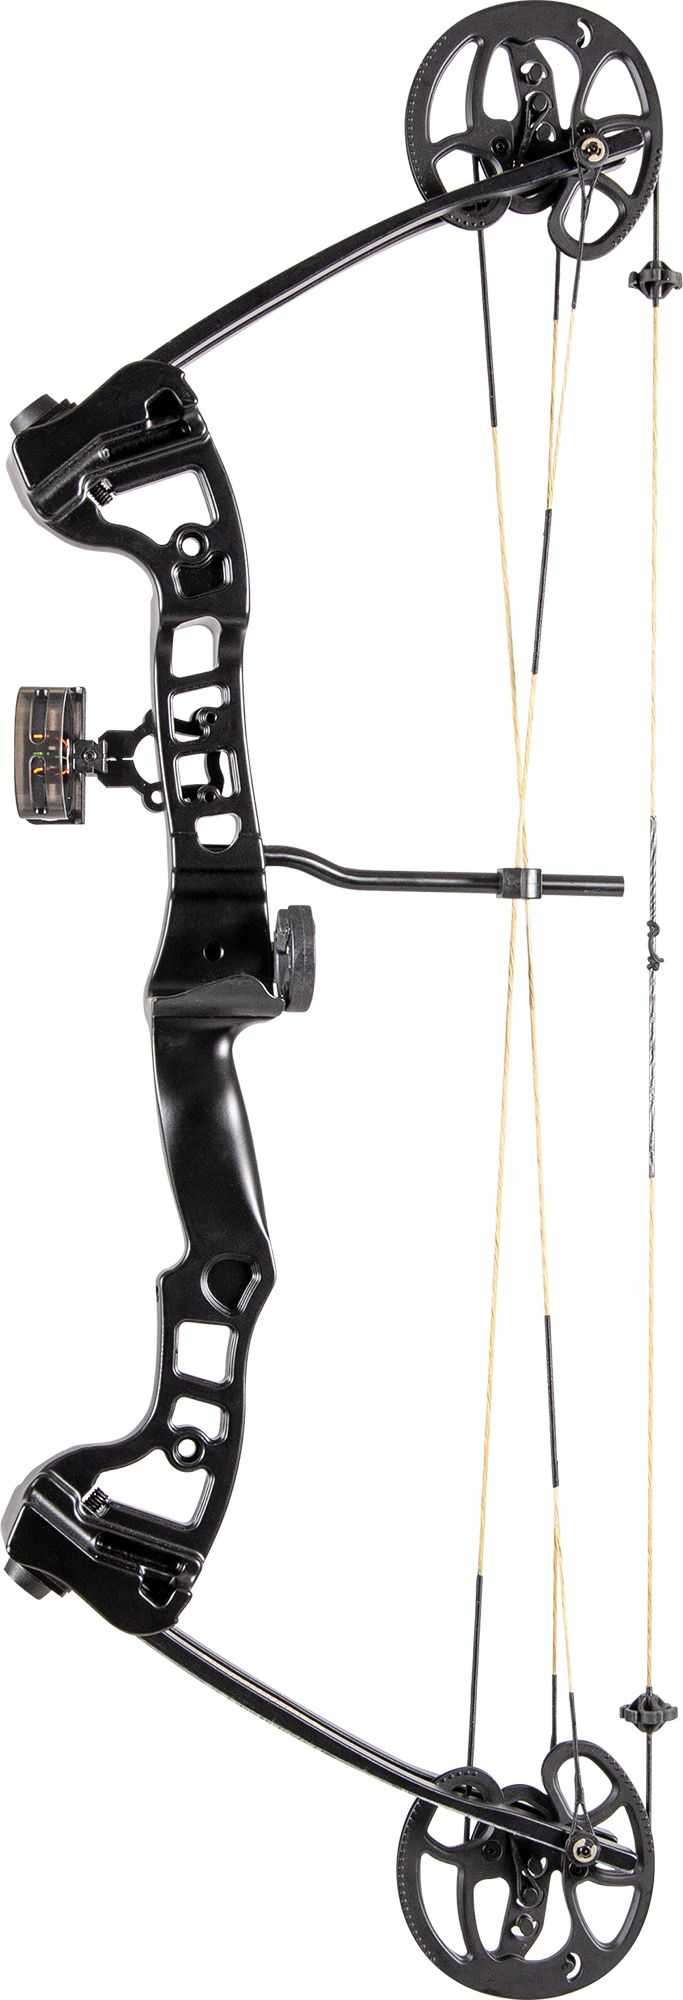 Barnett Vortex Lite Youth Compound Bow Package, Size: Small thumbnail